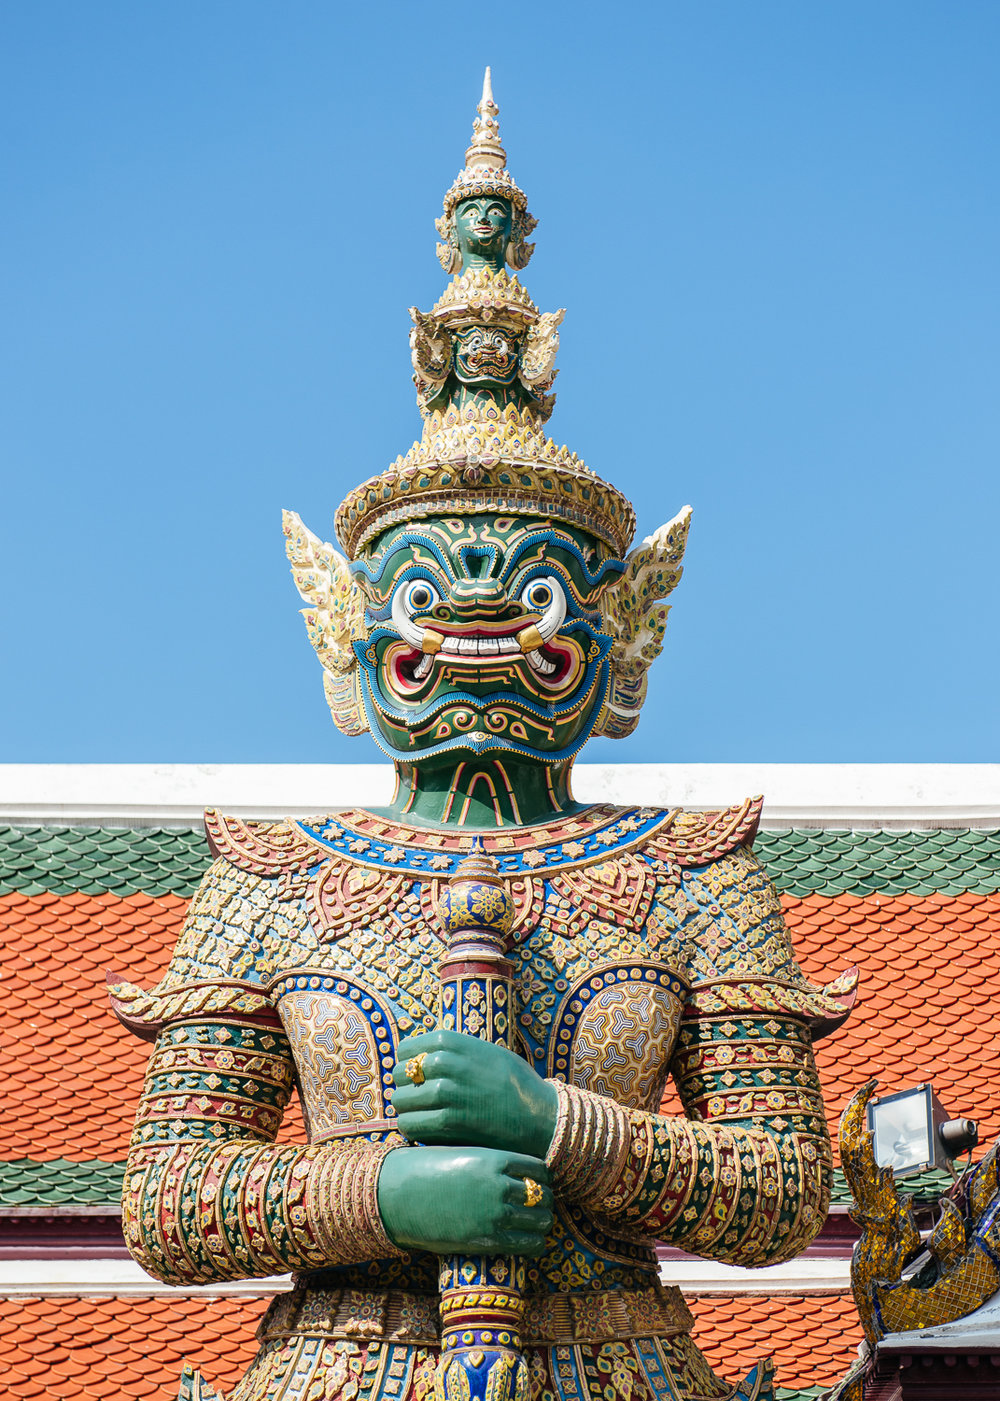 Yaksha statues are guardians of the gates in Buddhist temples.